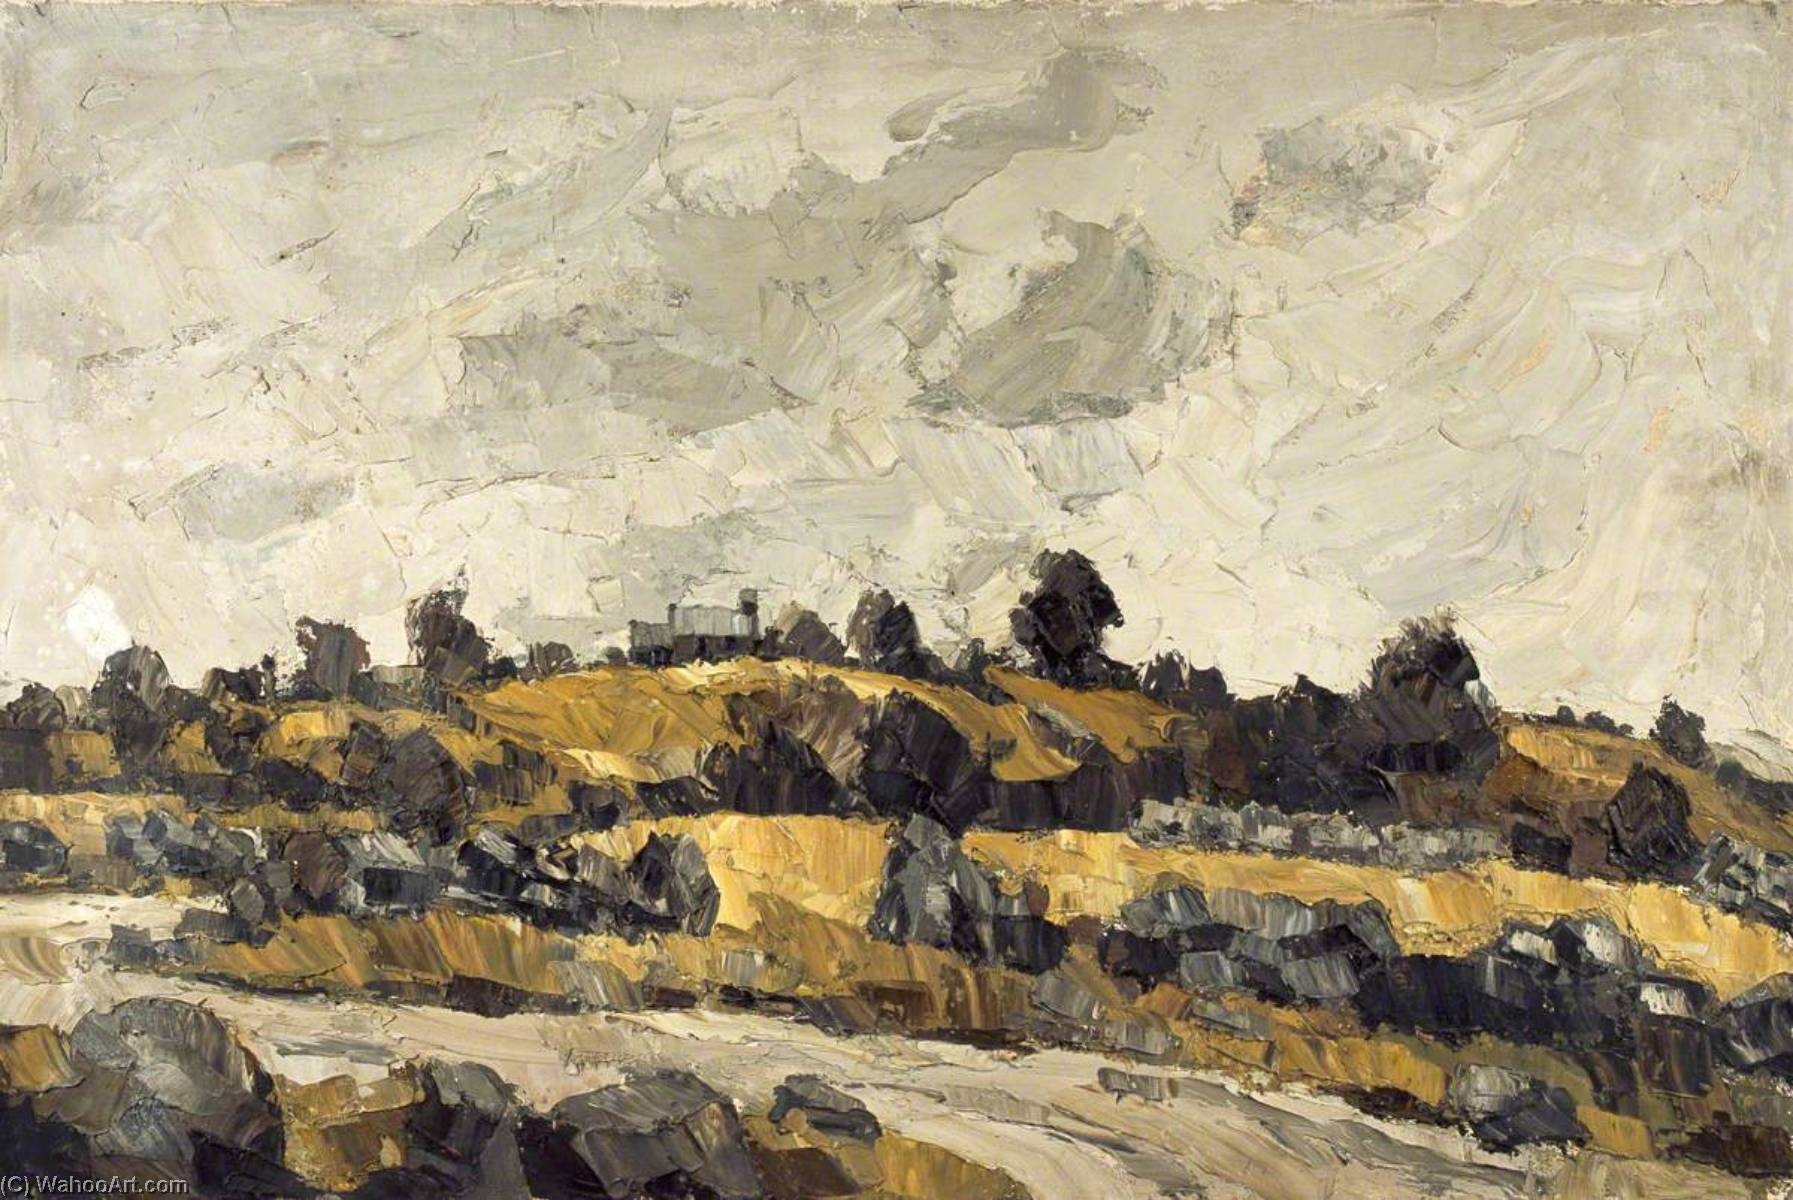 | campos amarillos bajo  Un  Gris  el cielo  de John Kyffin Williams | TopImpressionists.com